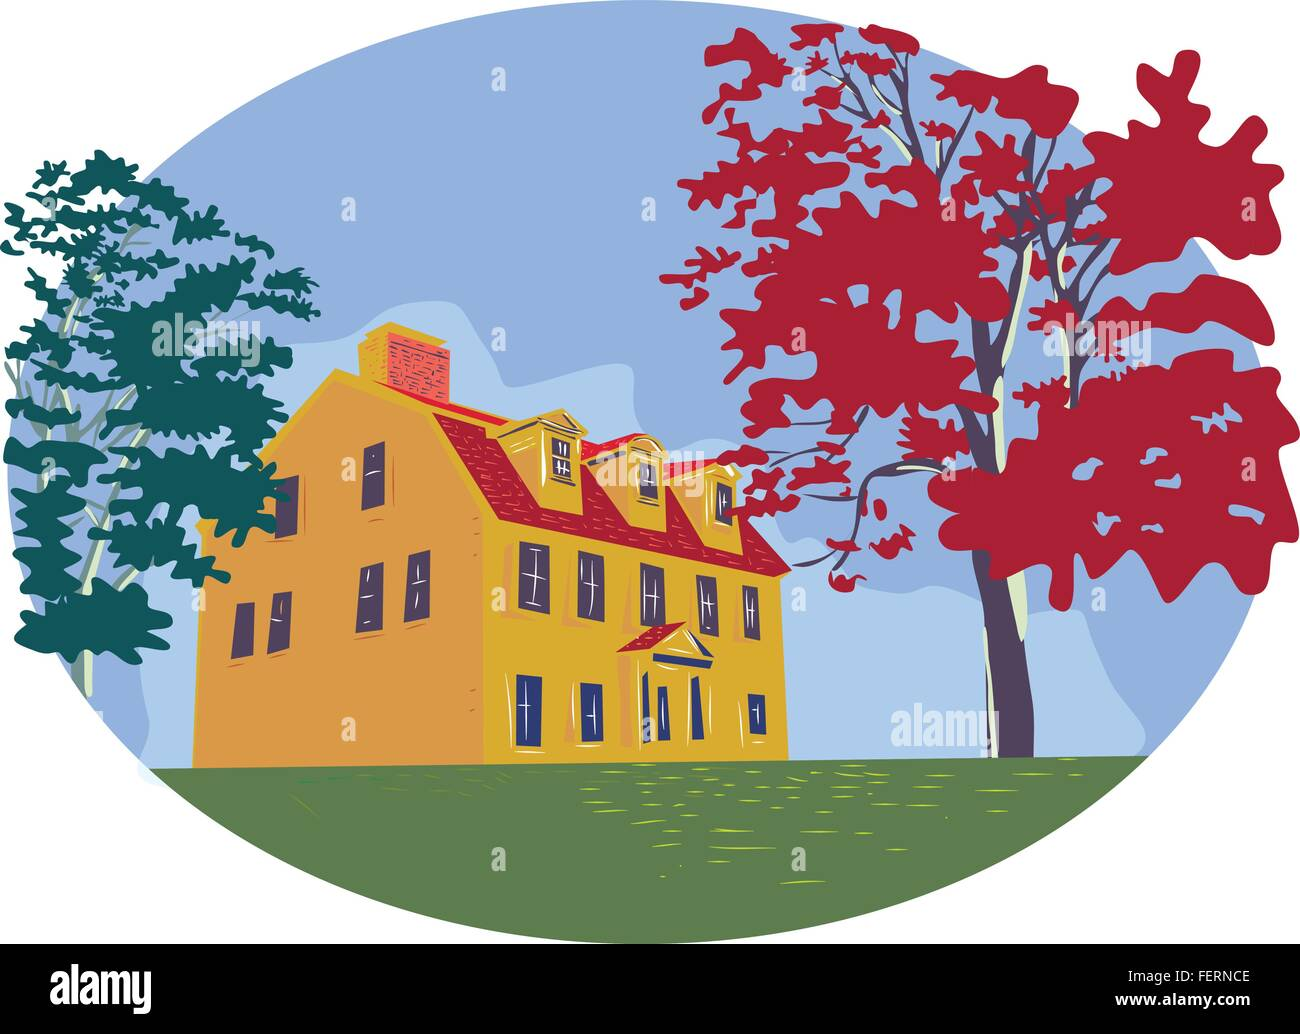 WPA style illustration of a colonial house with trees set inside circle on isolated background. - Stock Vector